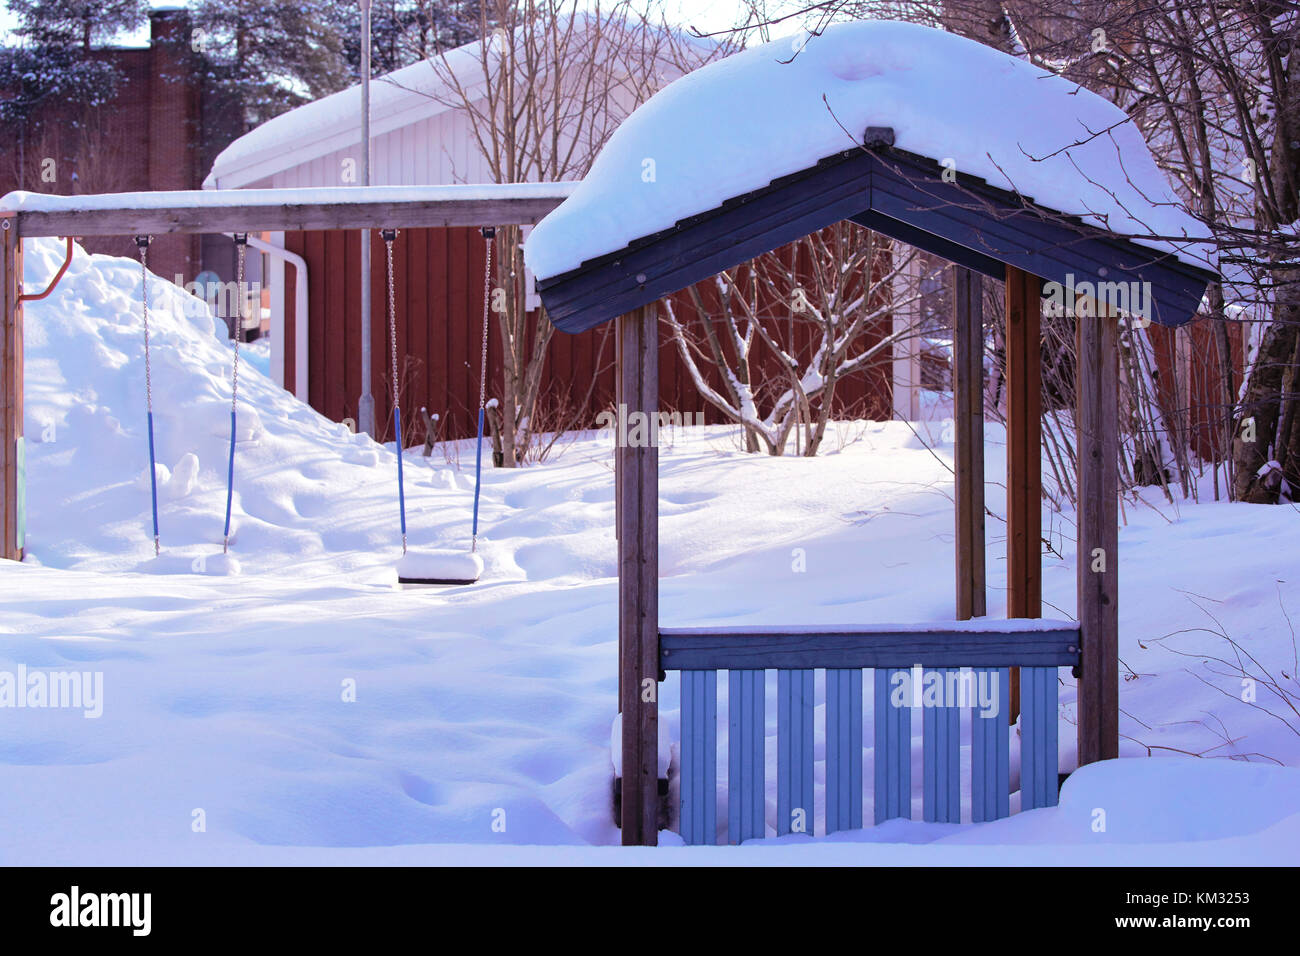 Swing covered with snow as outdoor facility in Rovaniemi, Lapland, Finland in winter - Stock Image